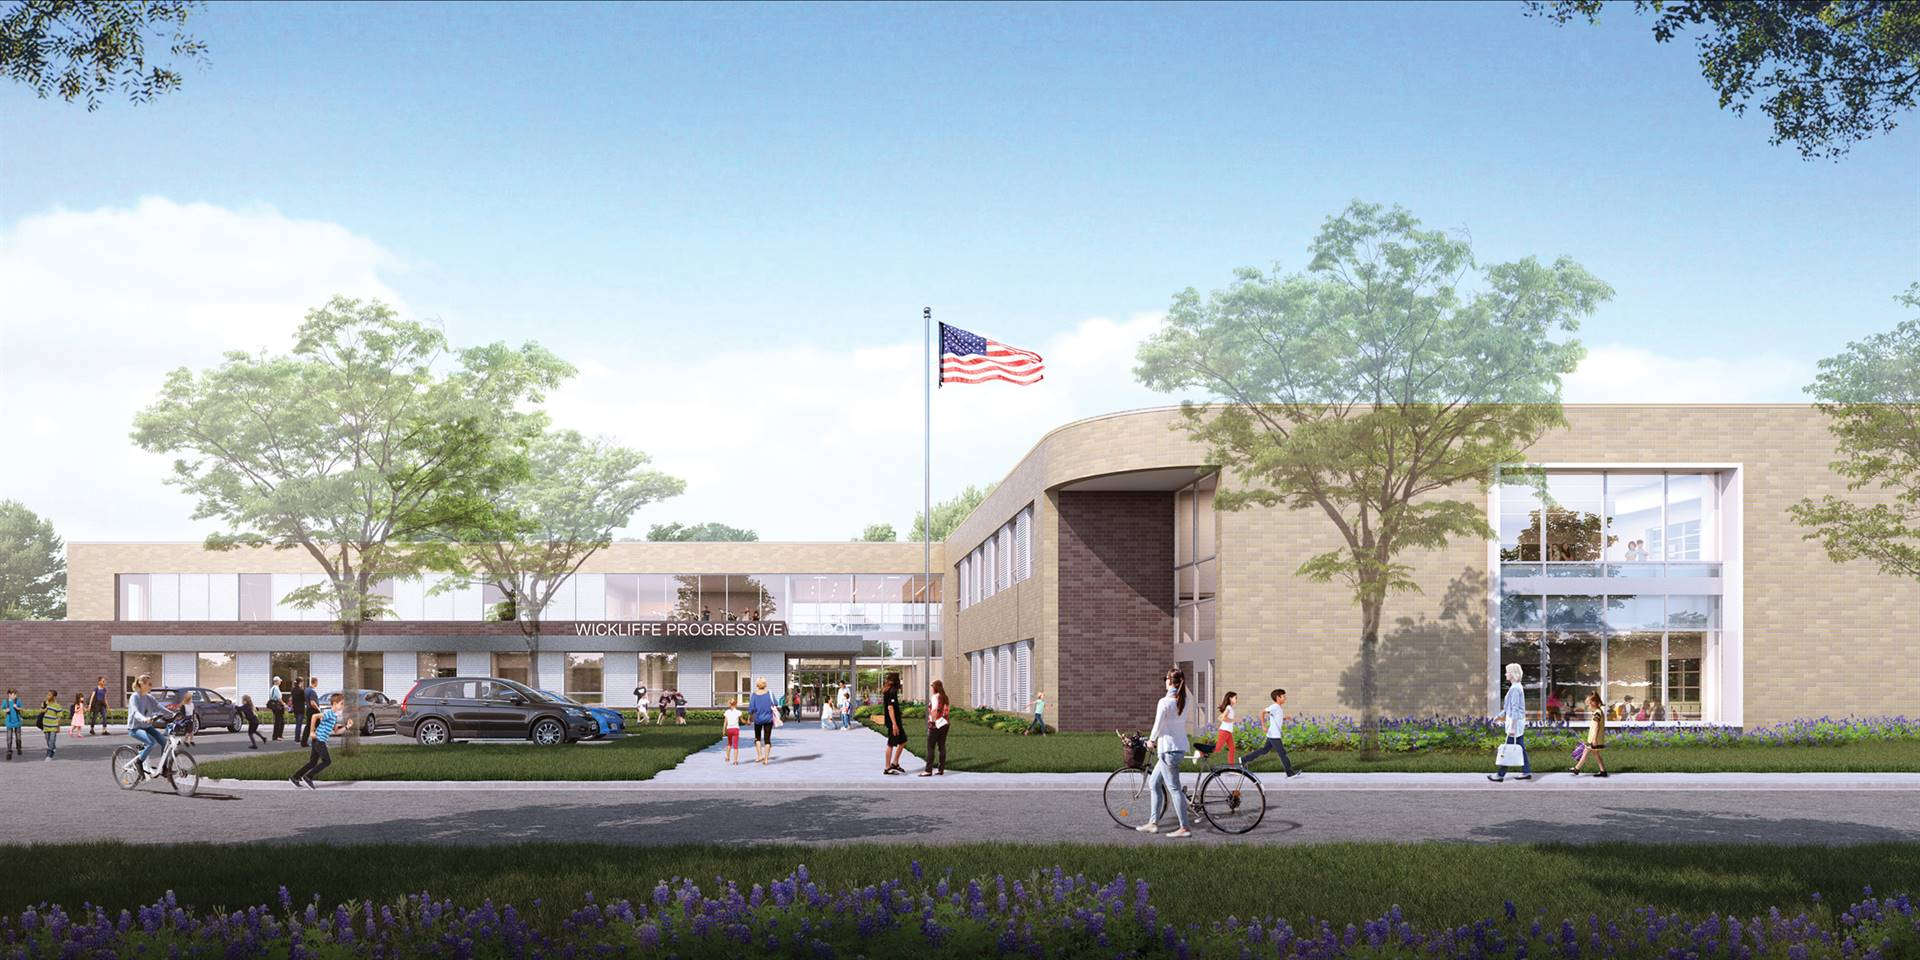 Rendering of the new Wickliffe